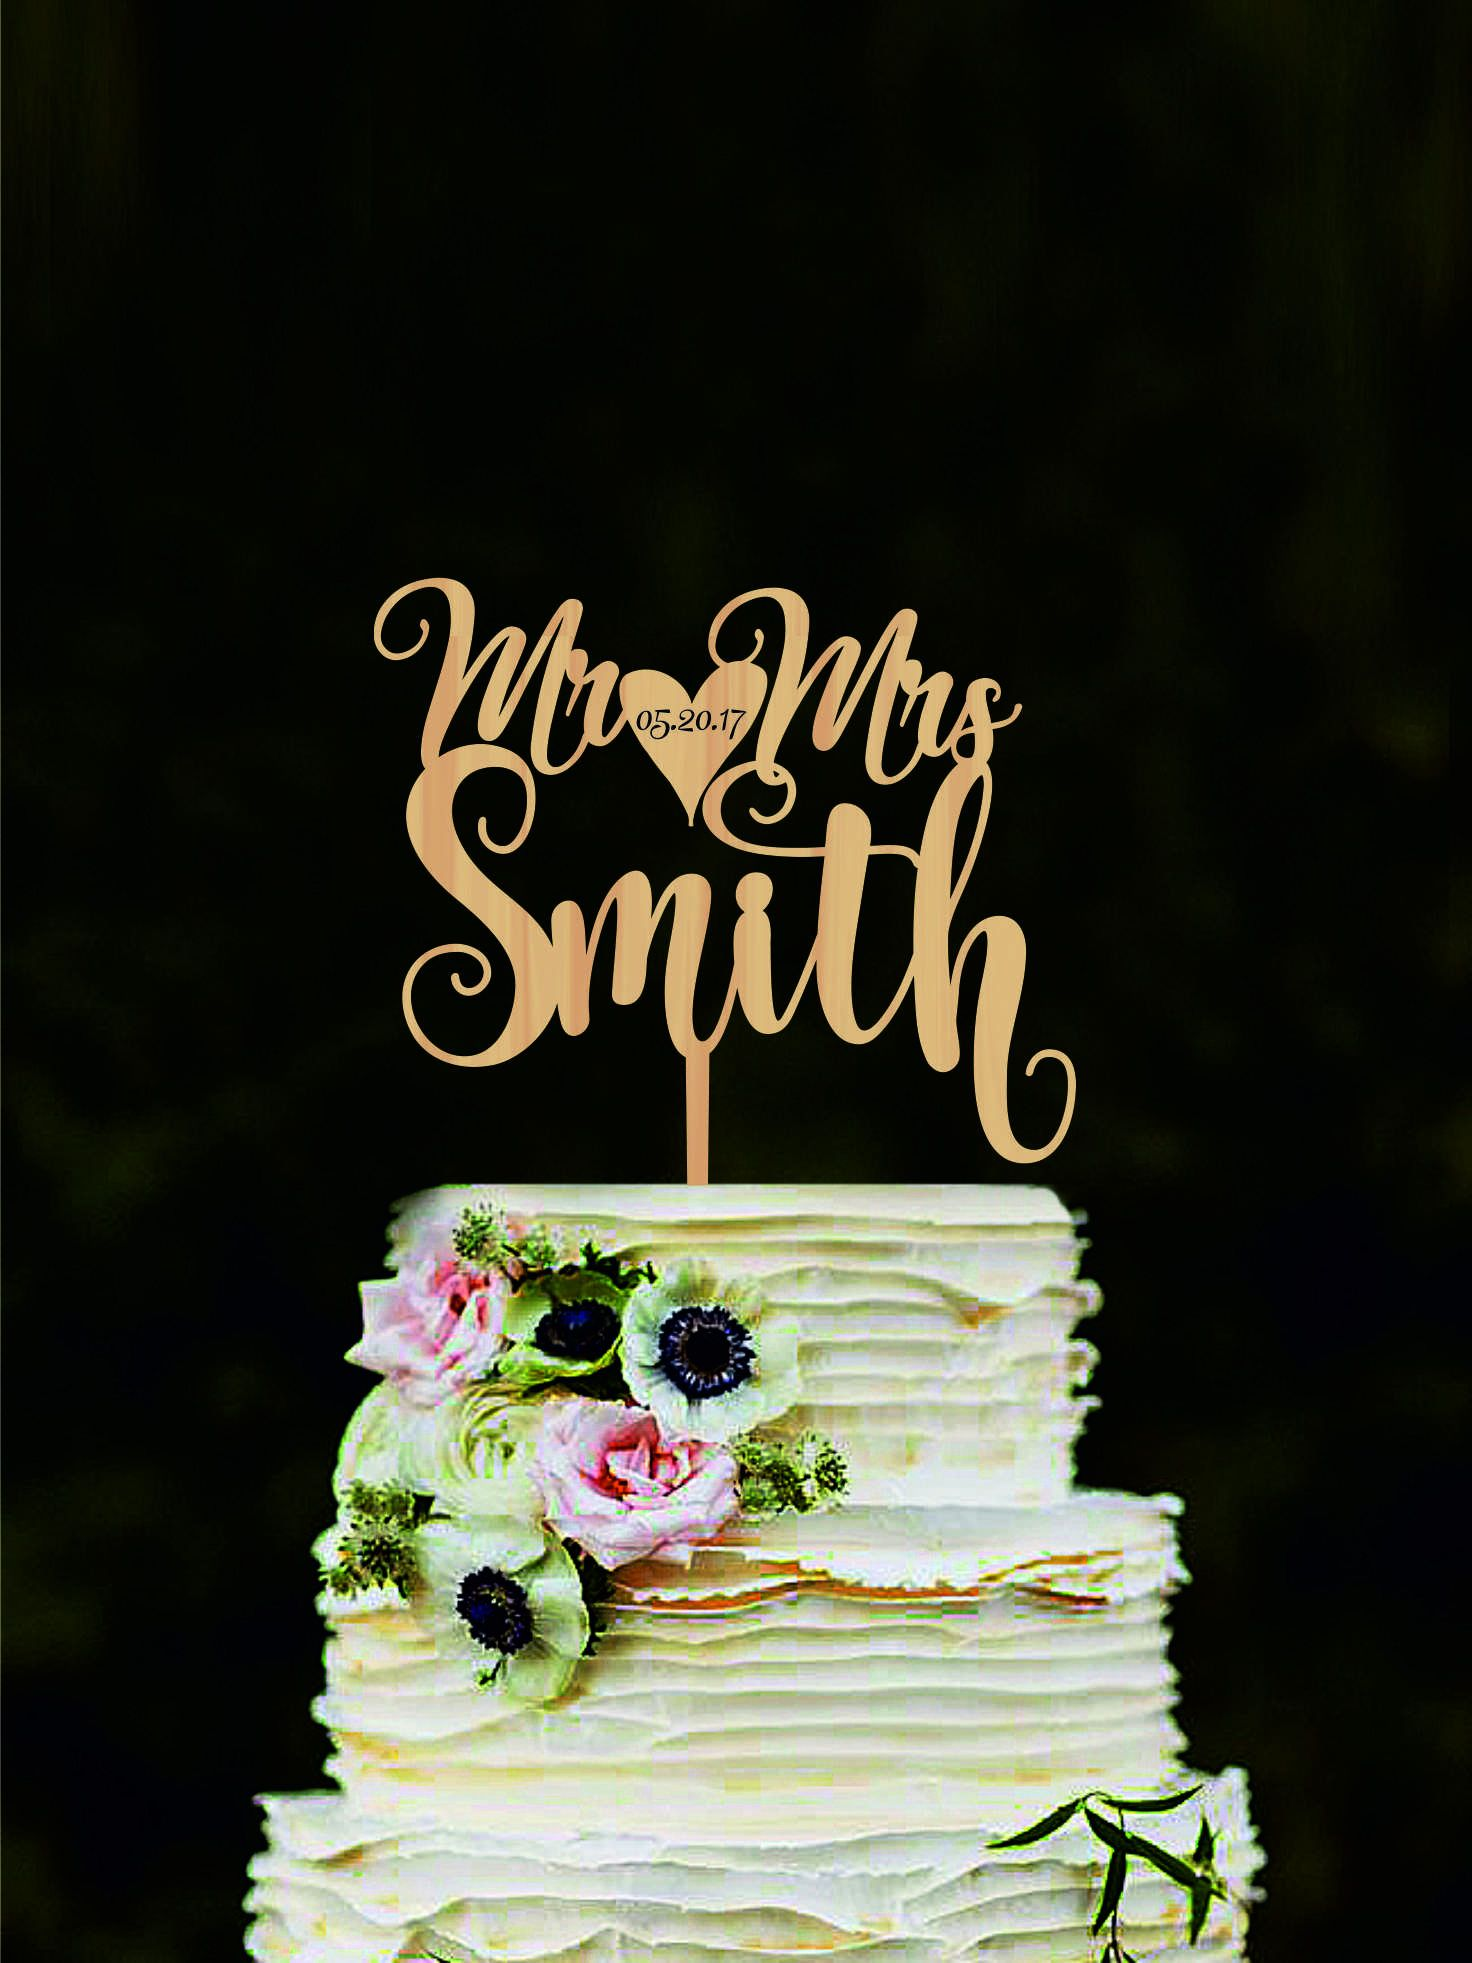 Name and date custom mr and mrs wedding cake topper personalized